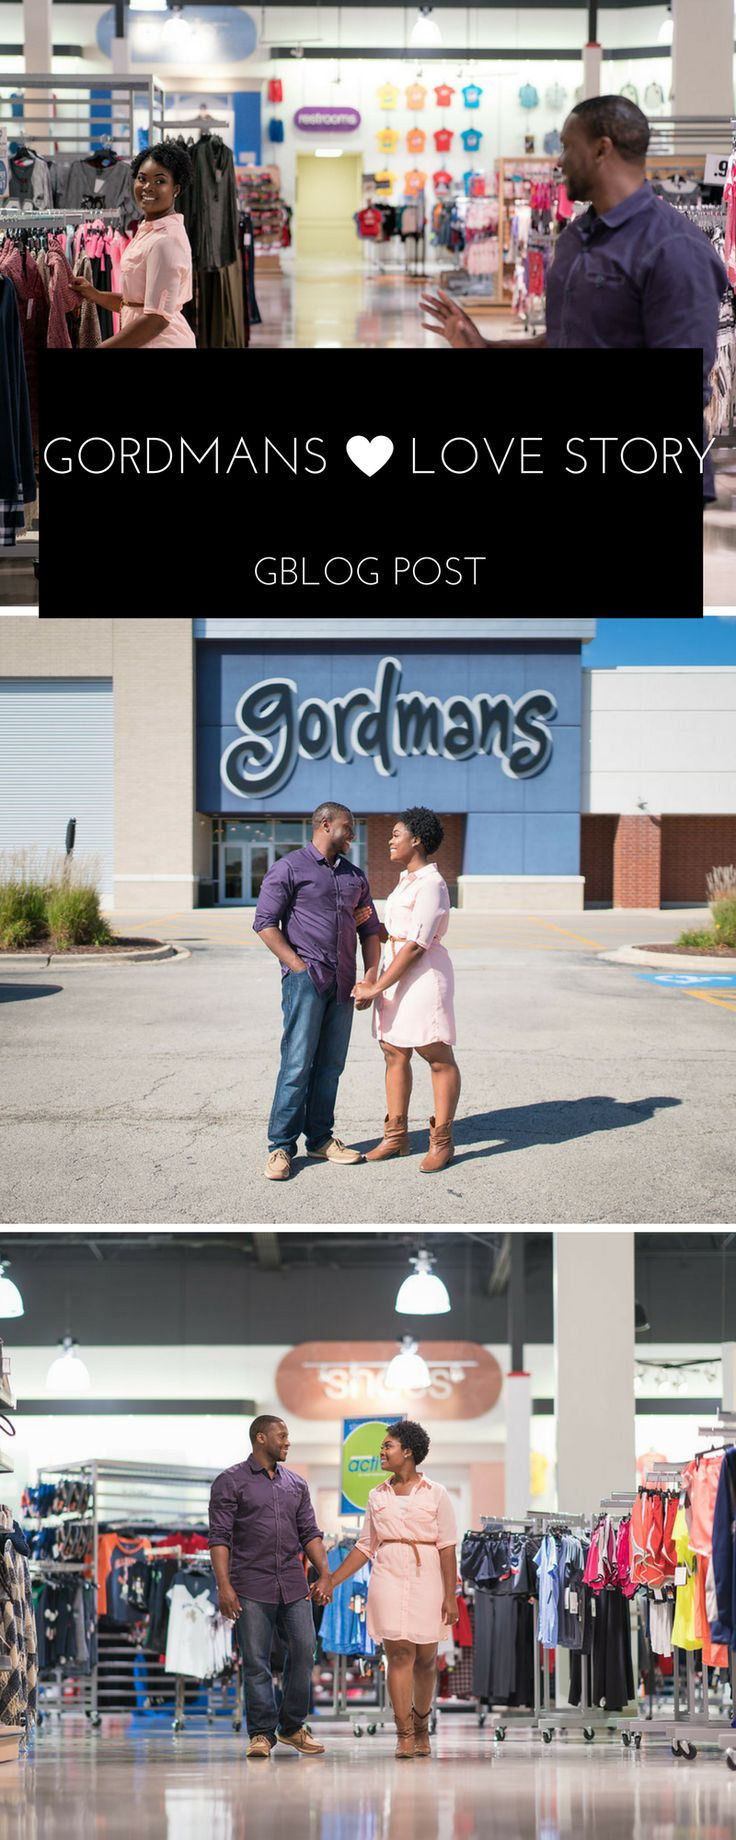 Find out how this adorable couple met and why they took their engagement pictures at a local gordmans store! Read more on this love story